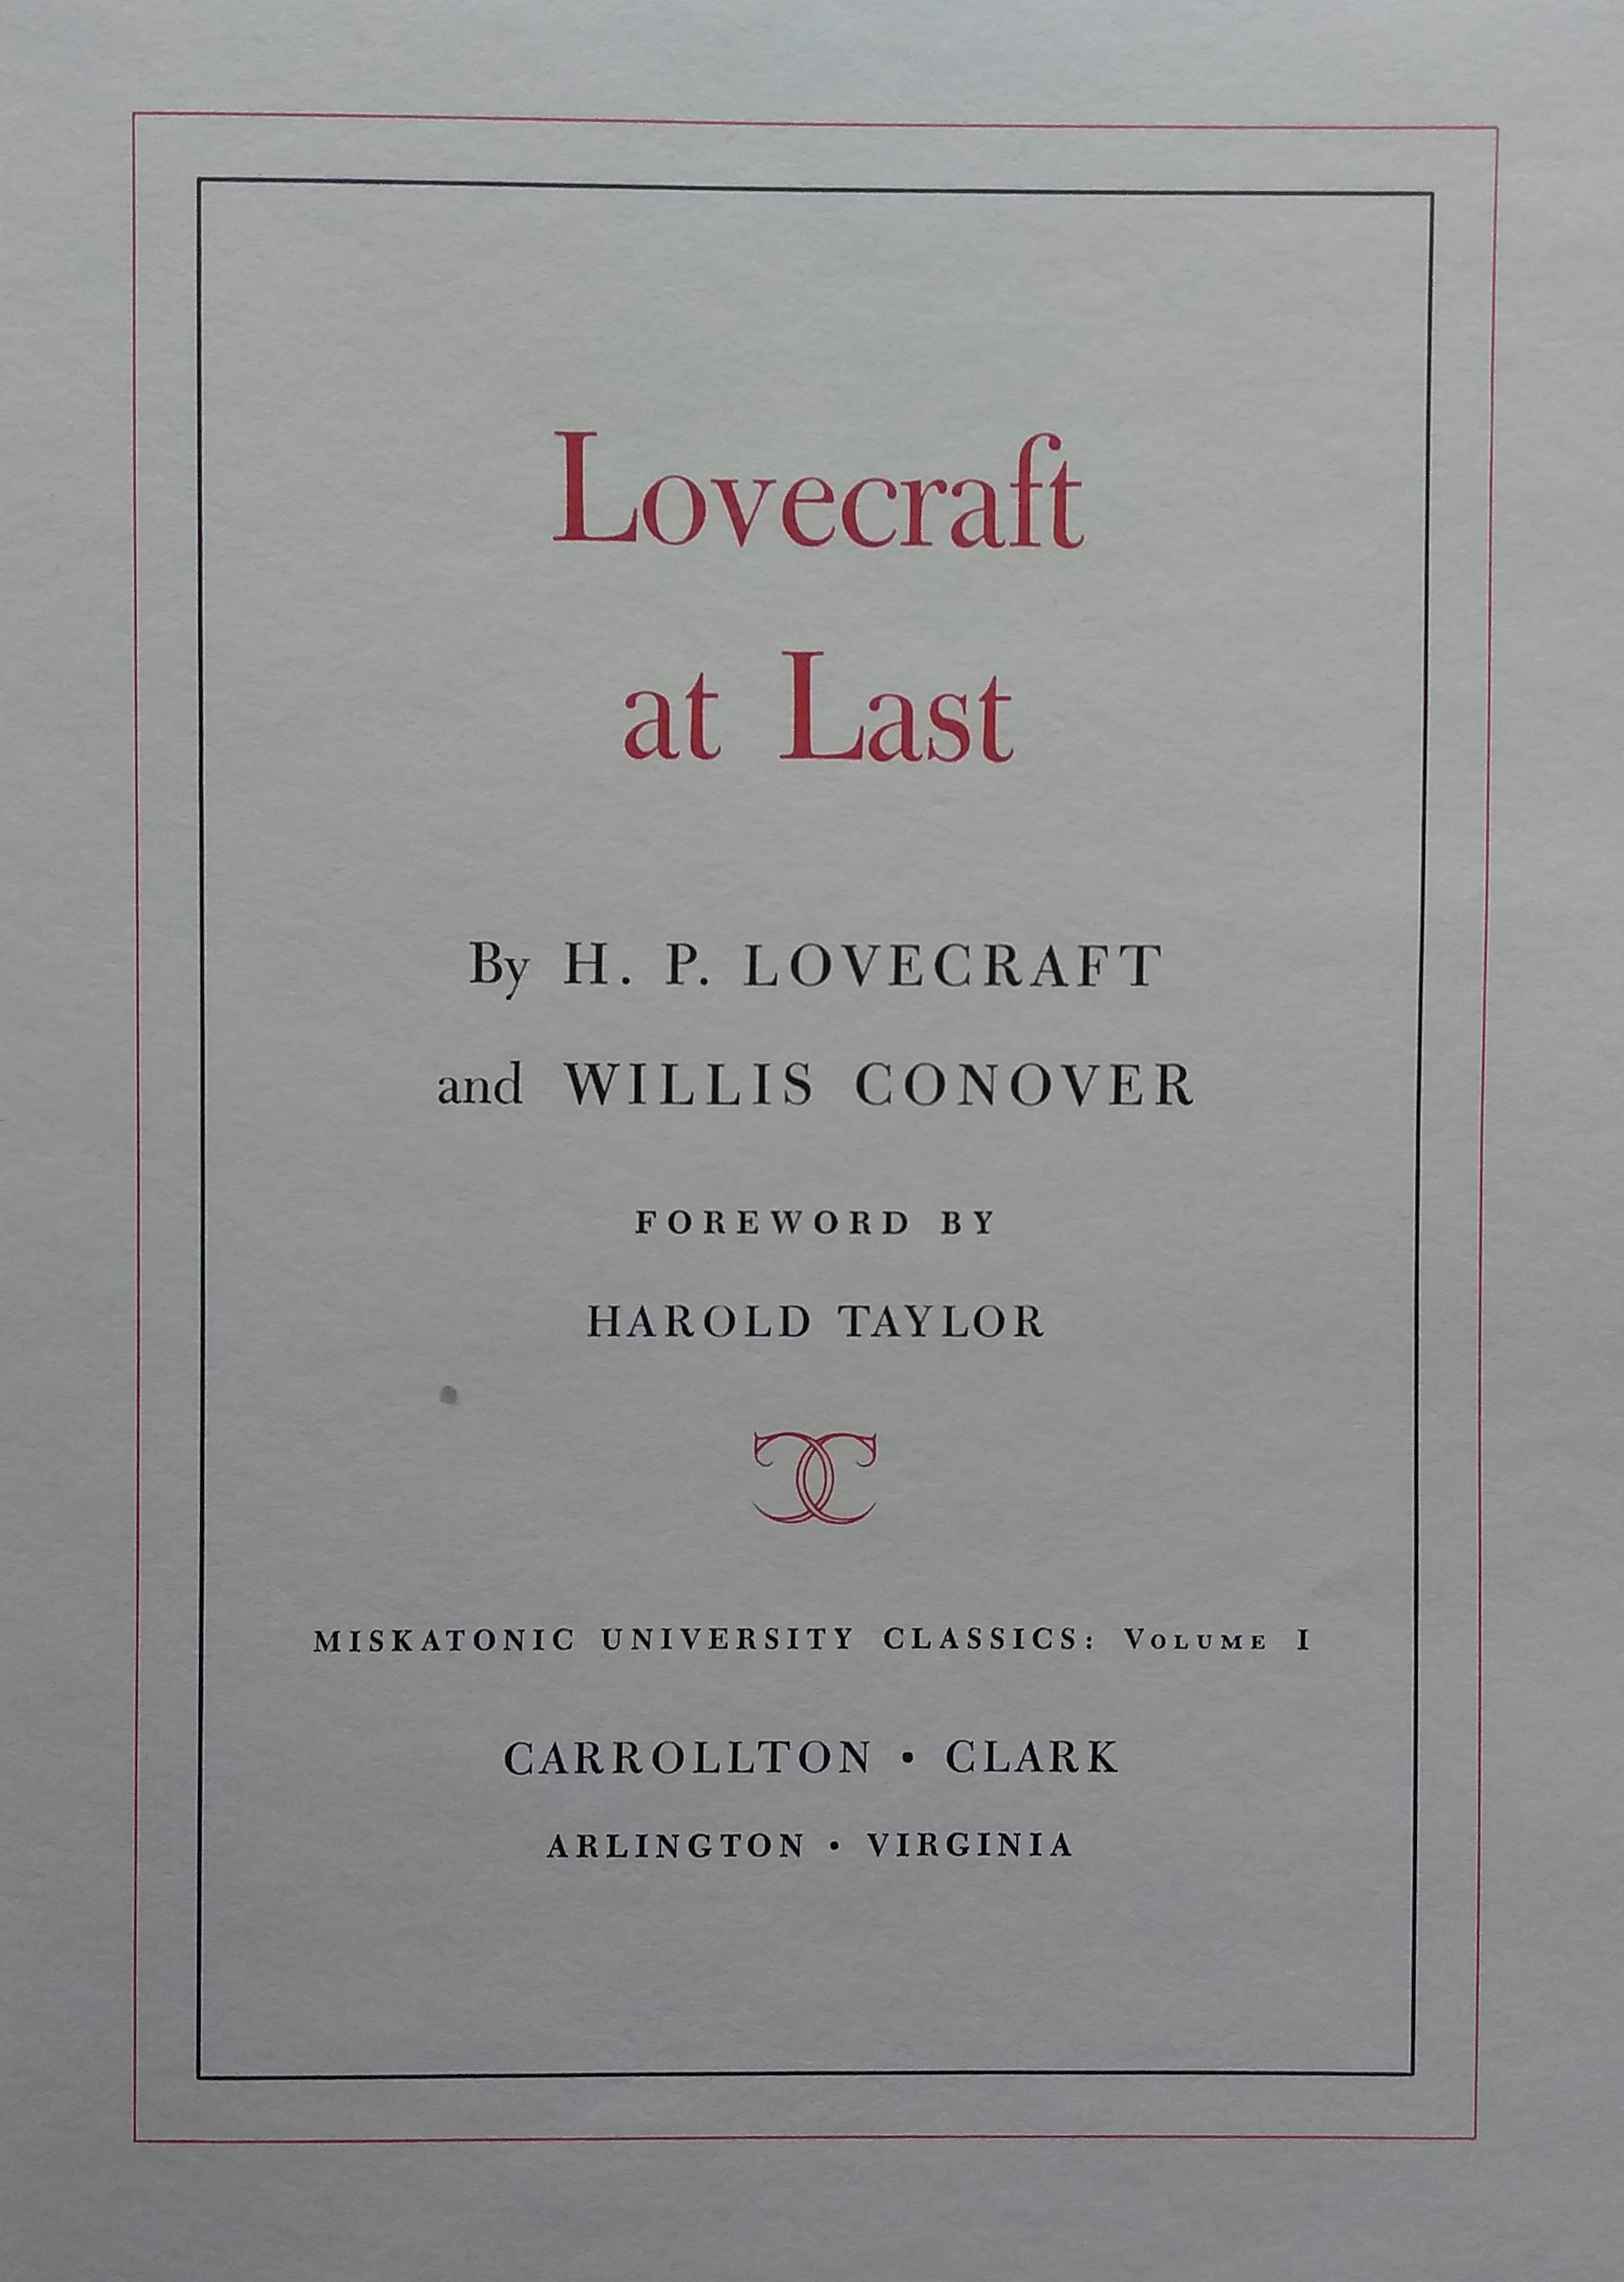 Lovecraft at last